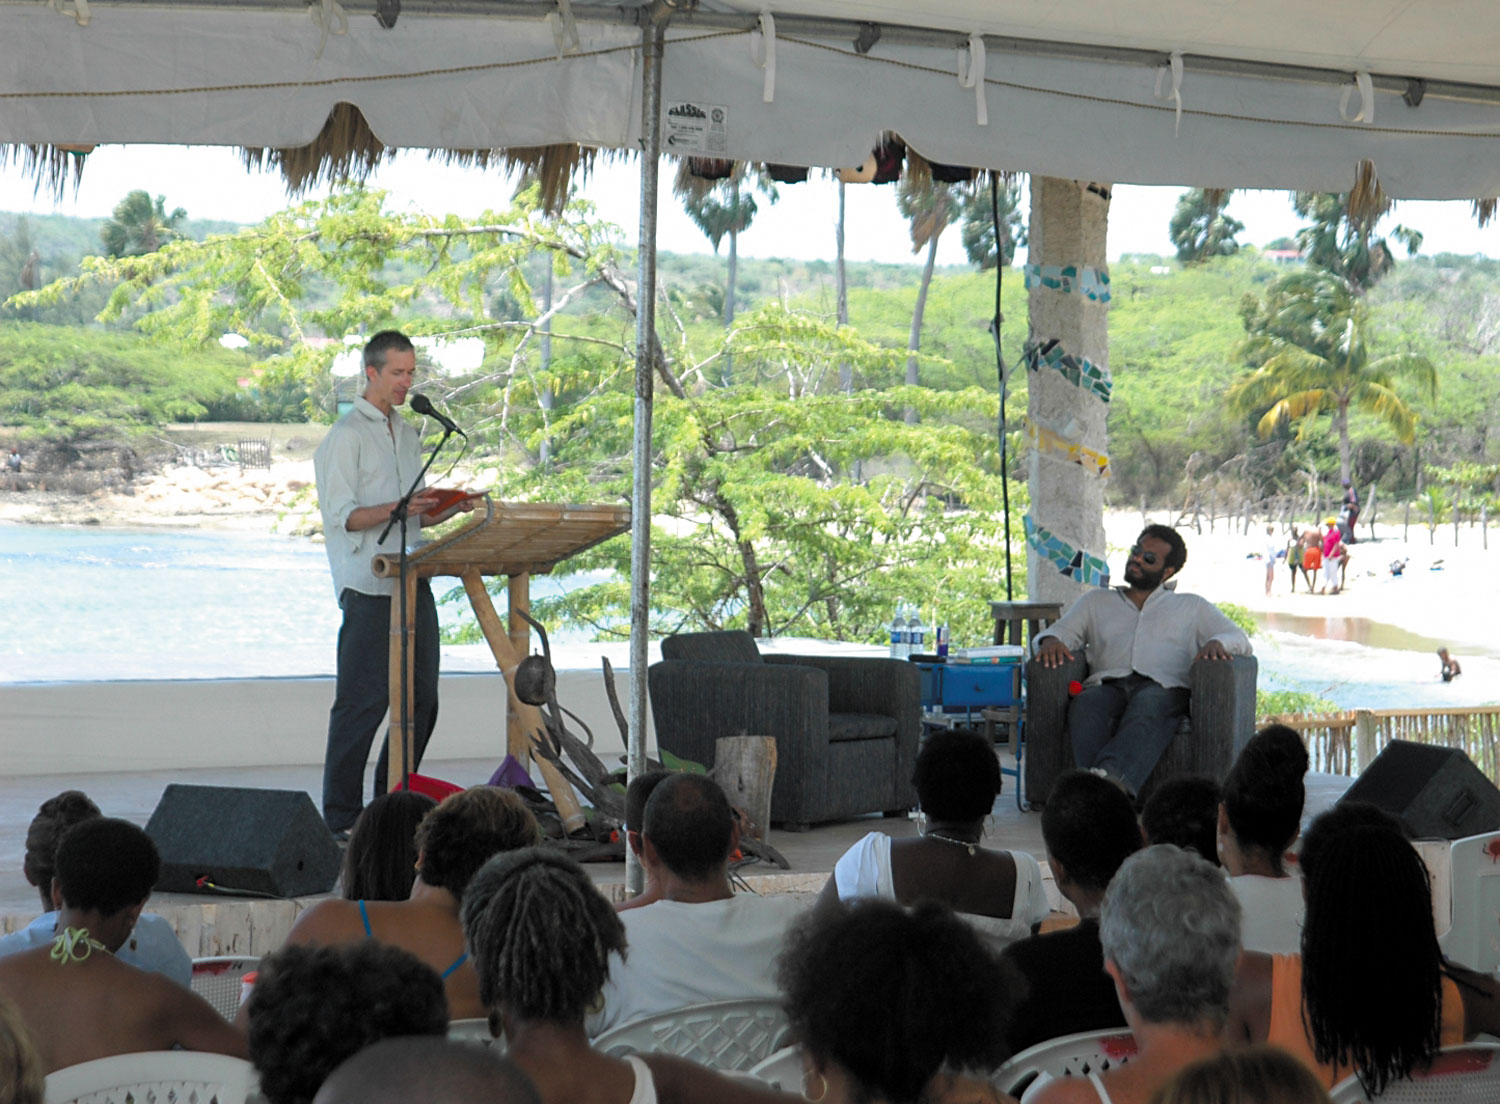 British author Geoff Dyer reads at Calabash 2006 as Colin Channer, founder and artistic director of Calabash, listens. Photograph courtesy the Calabash International Literary Festival